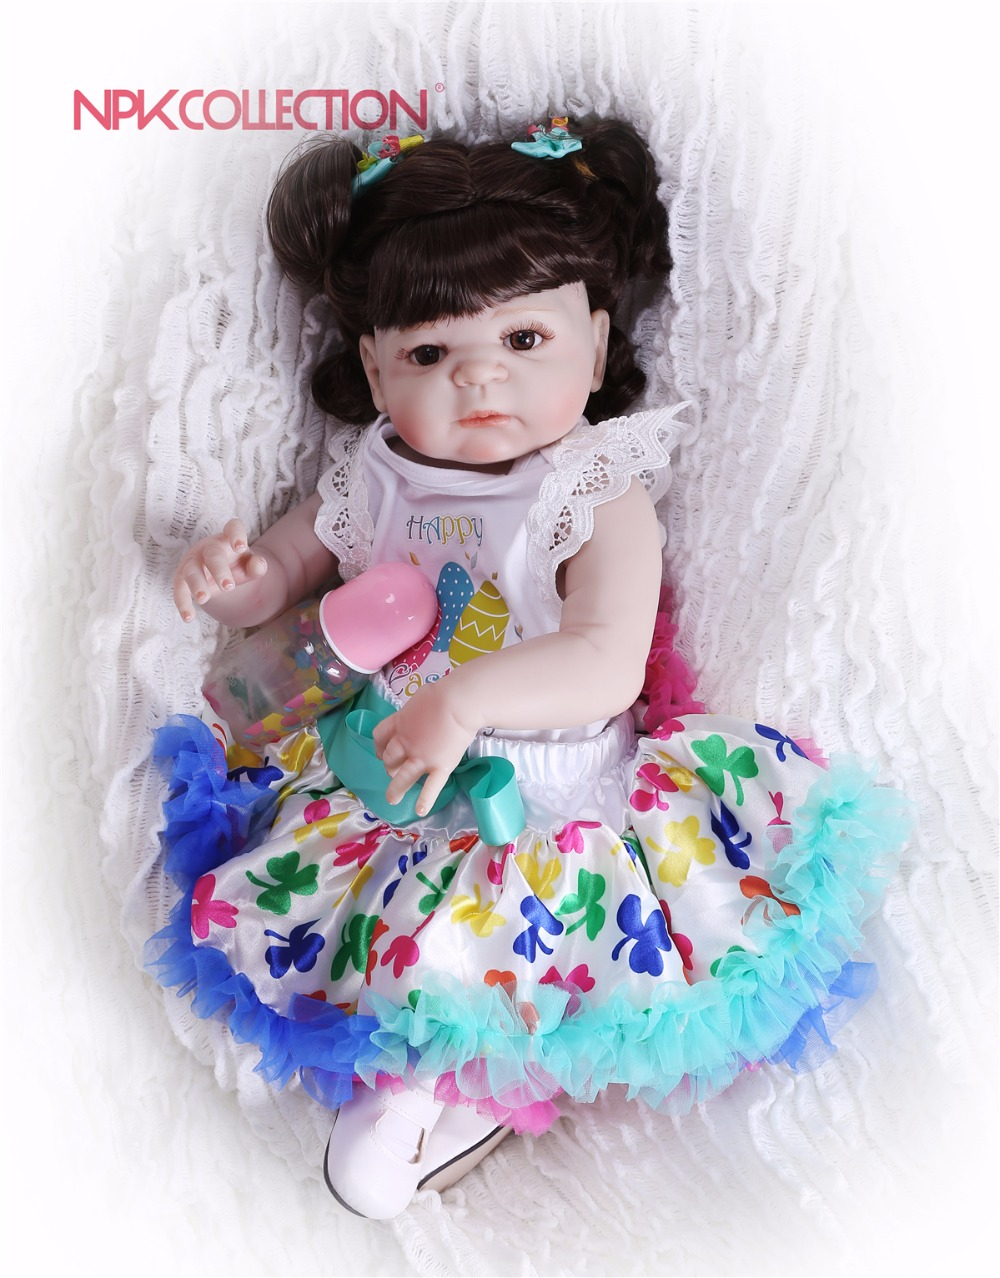 Baby Dolls Hairstyles Why Is Everyone Talking About The Current